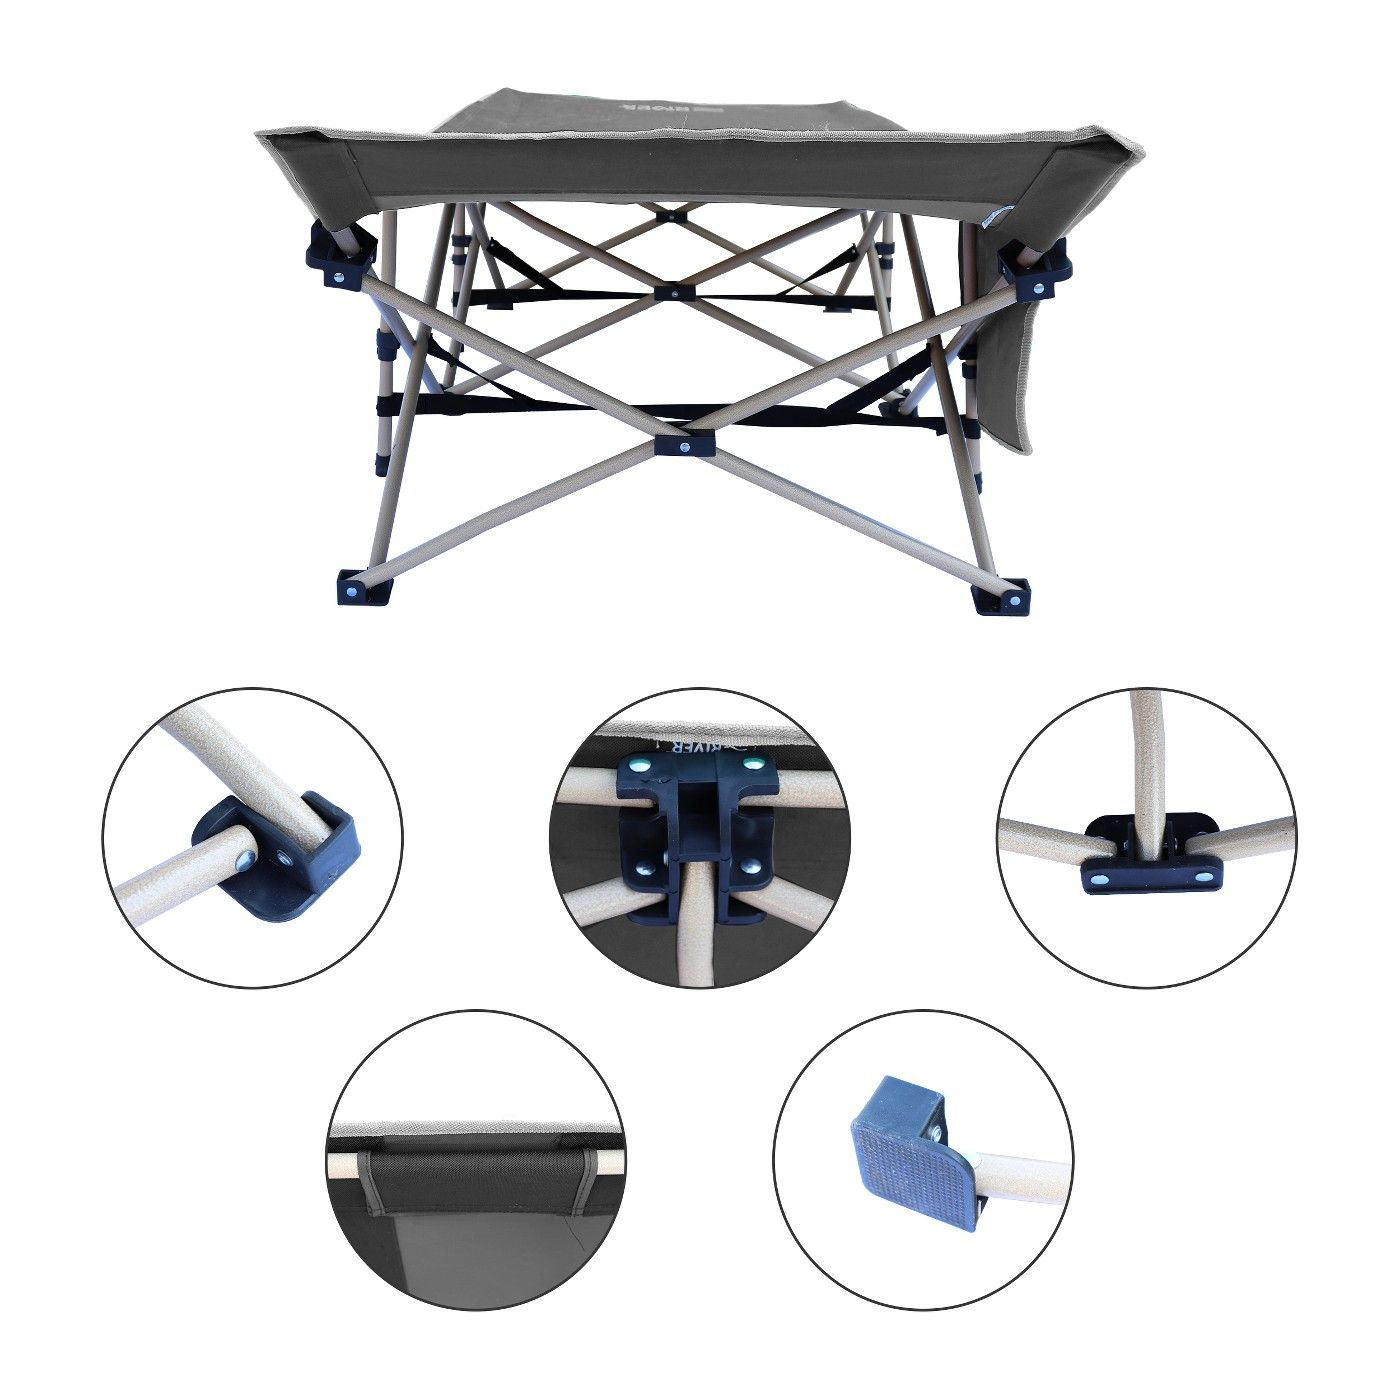 Osage River Folding Camping Cot with Carry Bag, Portable